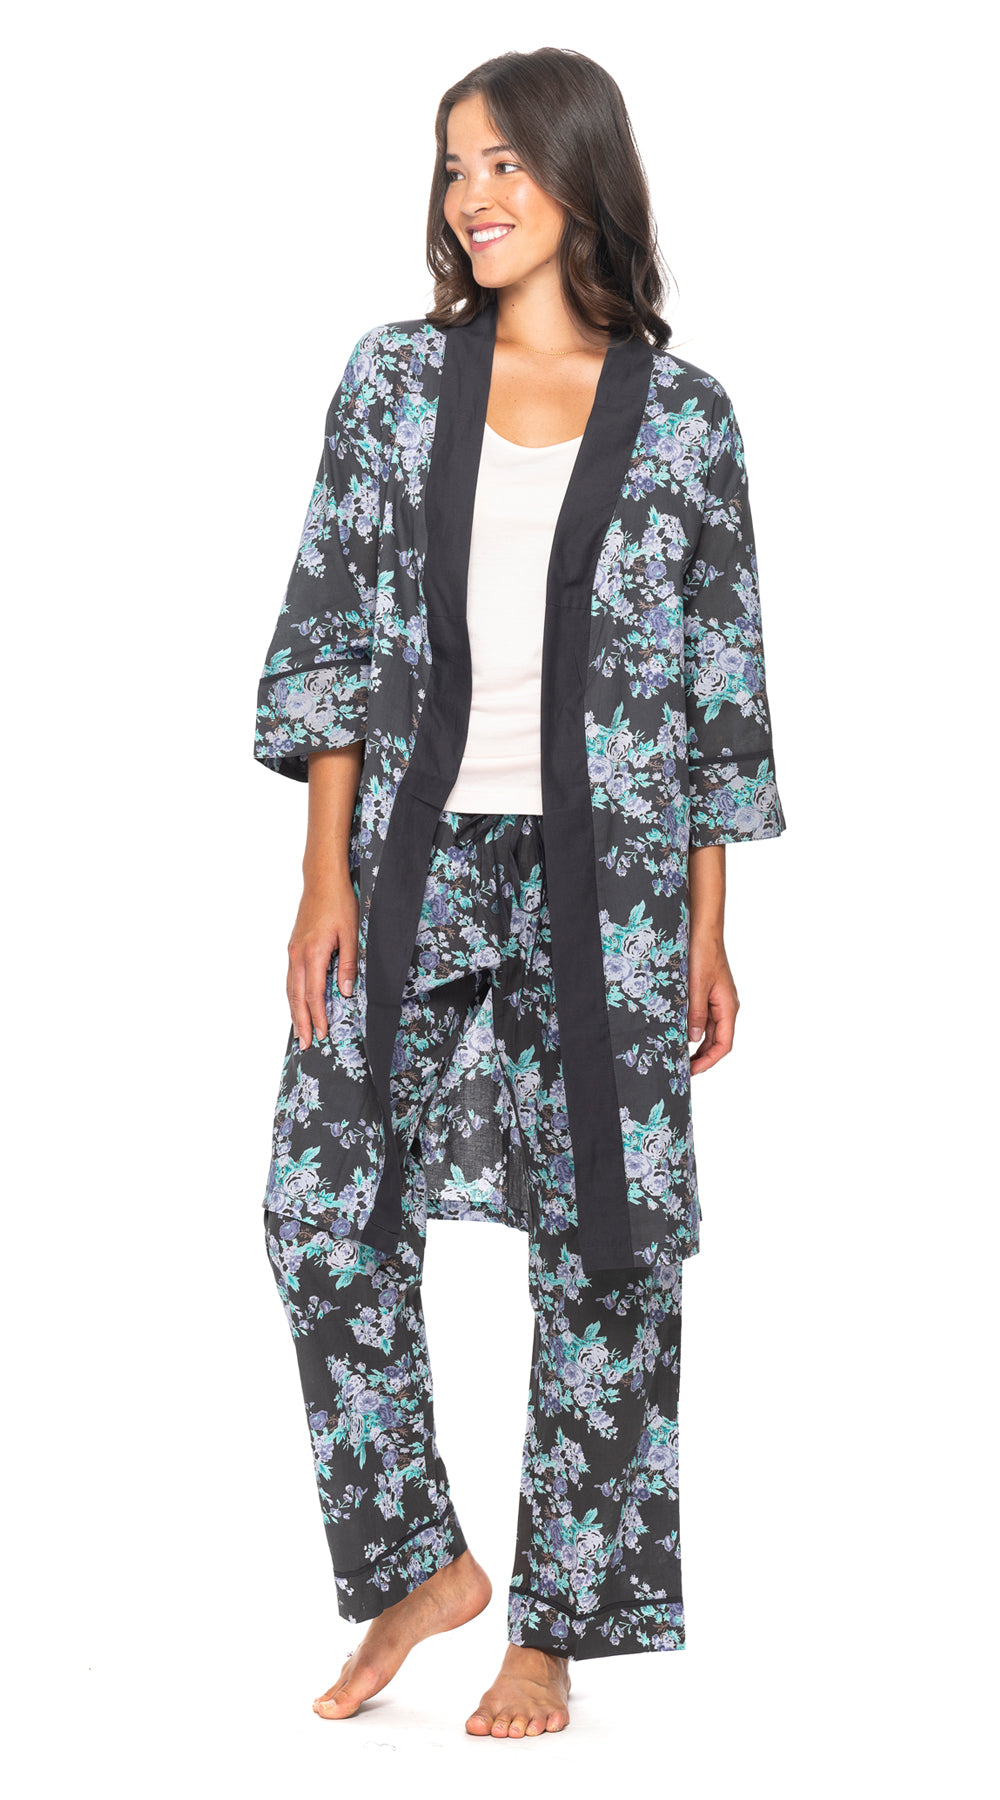 Organic Cotton Bathrobe+Pants SET - 5 PRINTS!